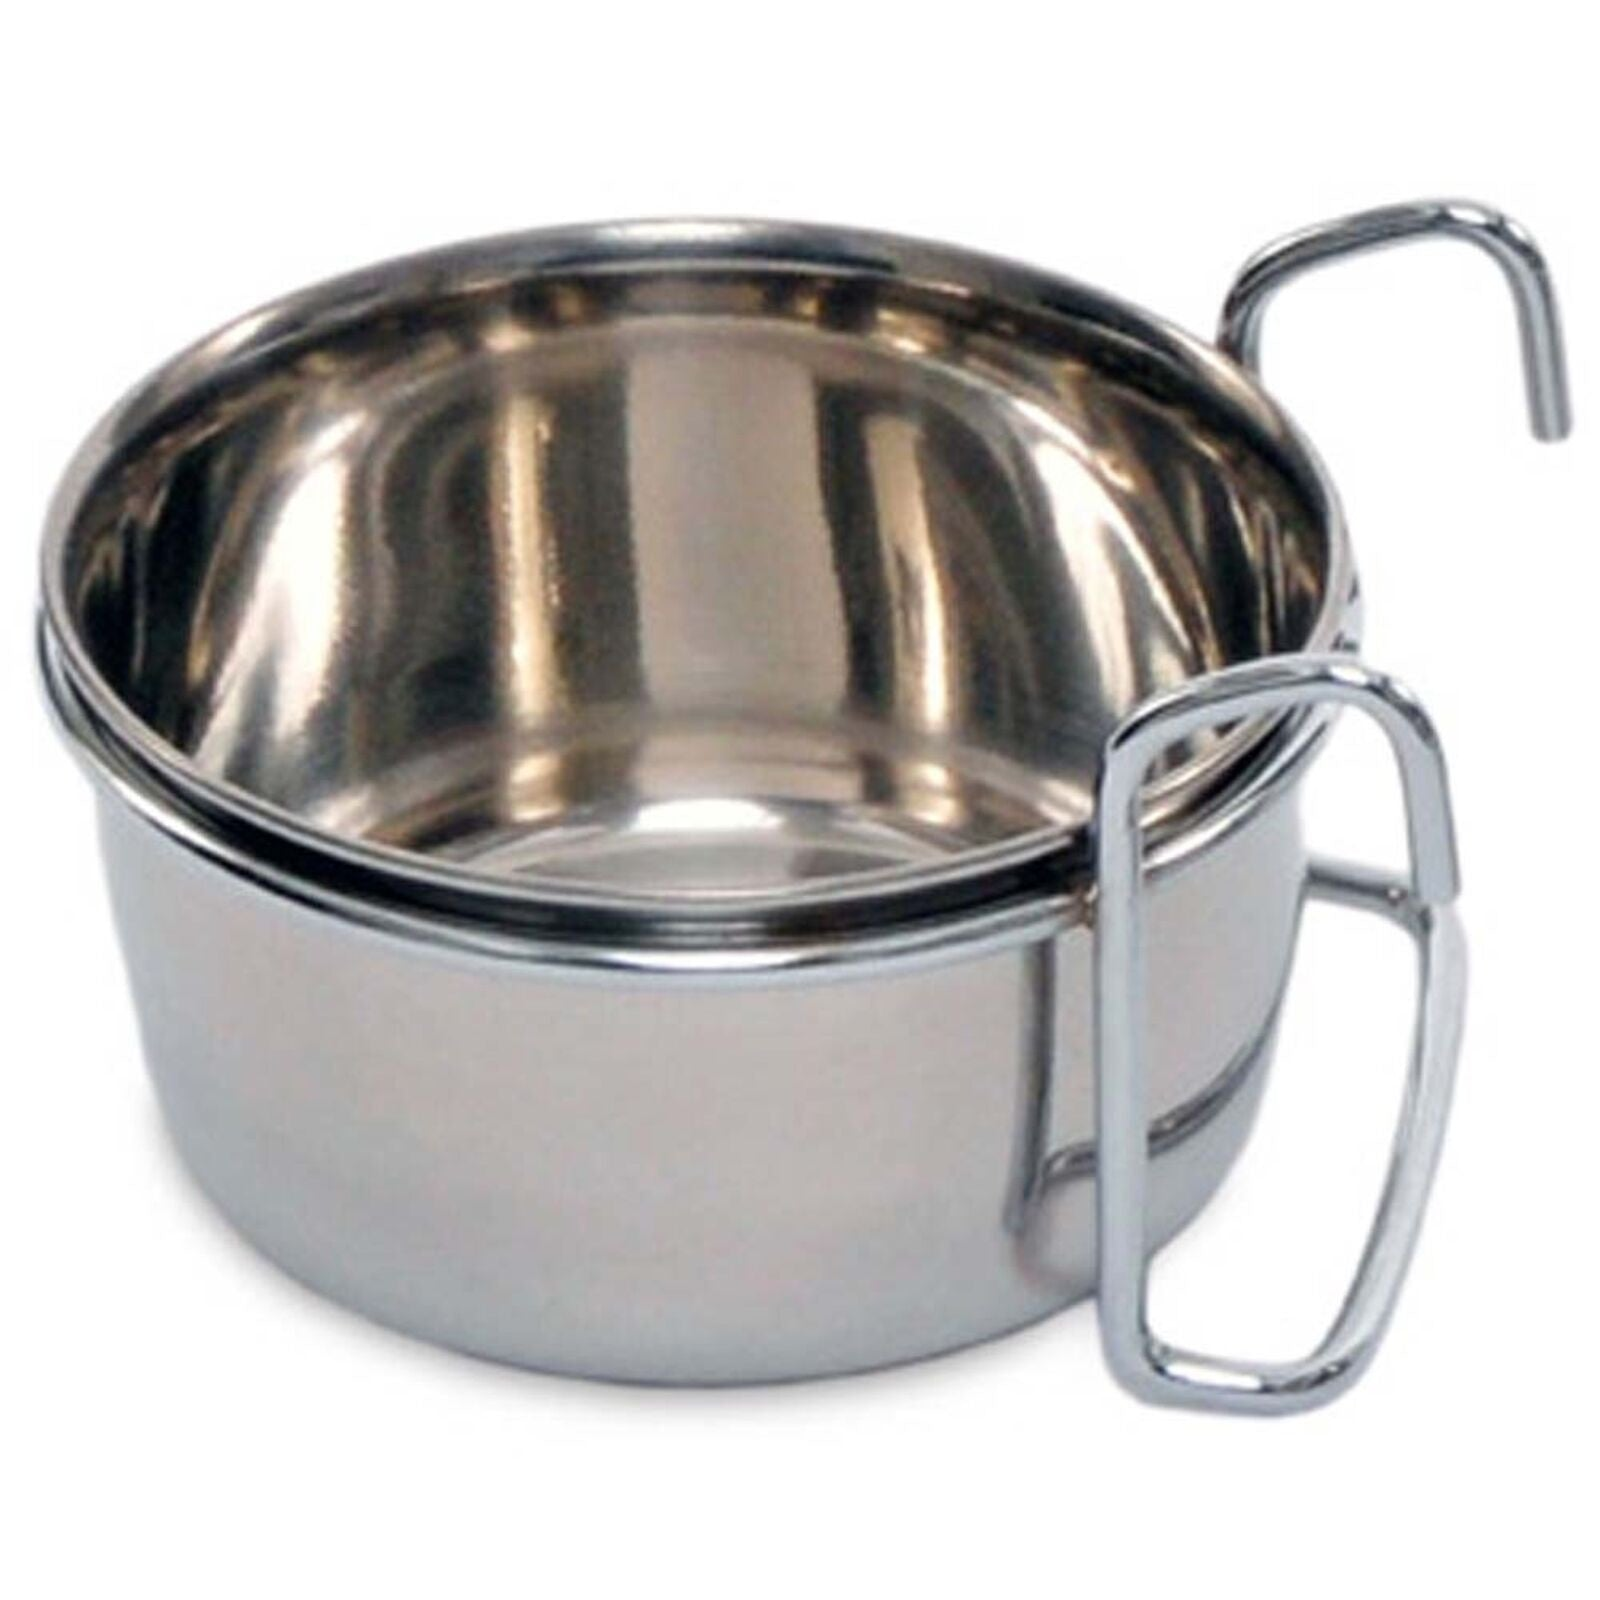 Stainless Steel Coop Cup 10oz